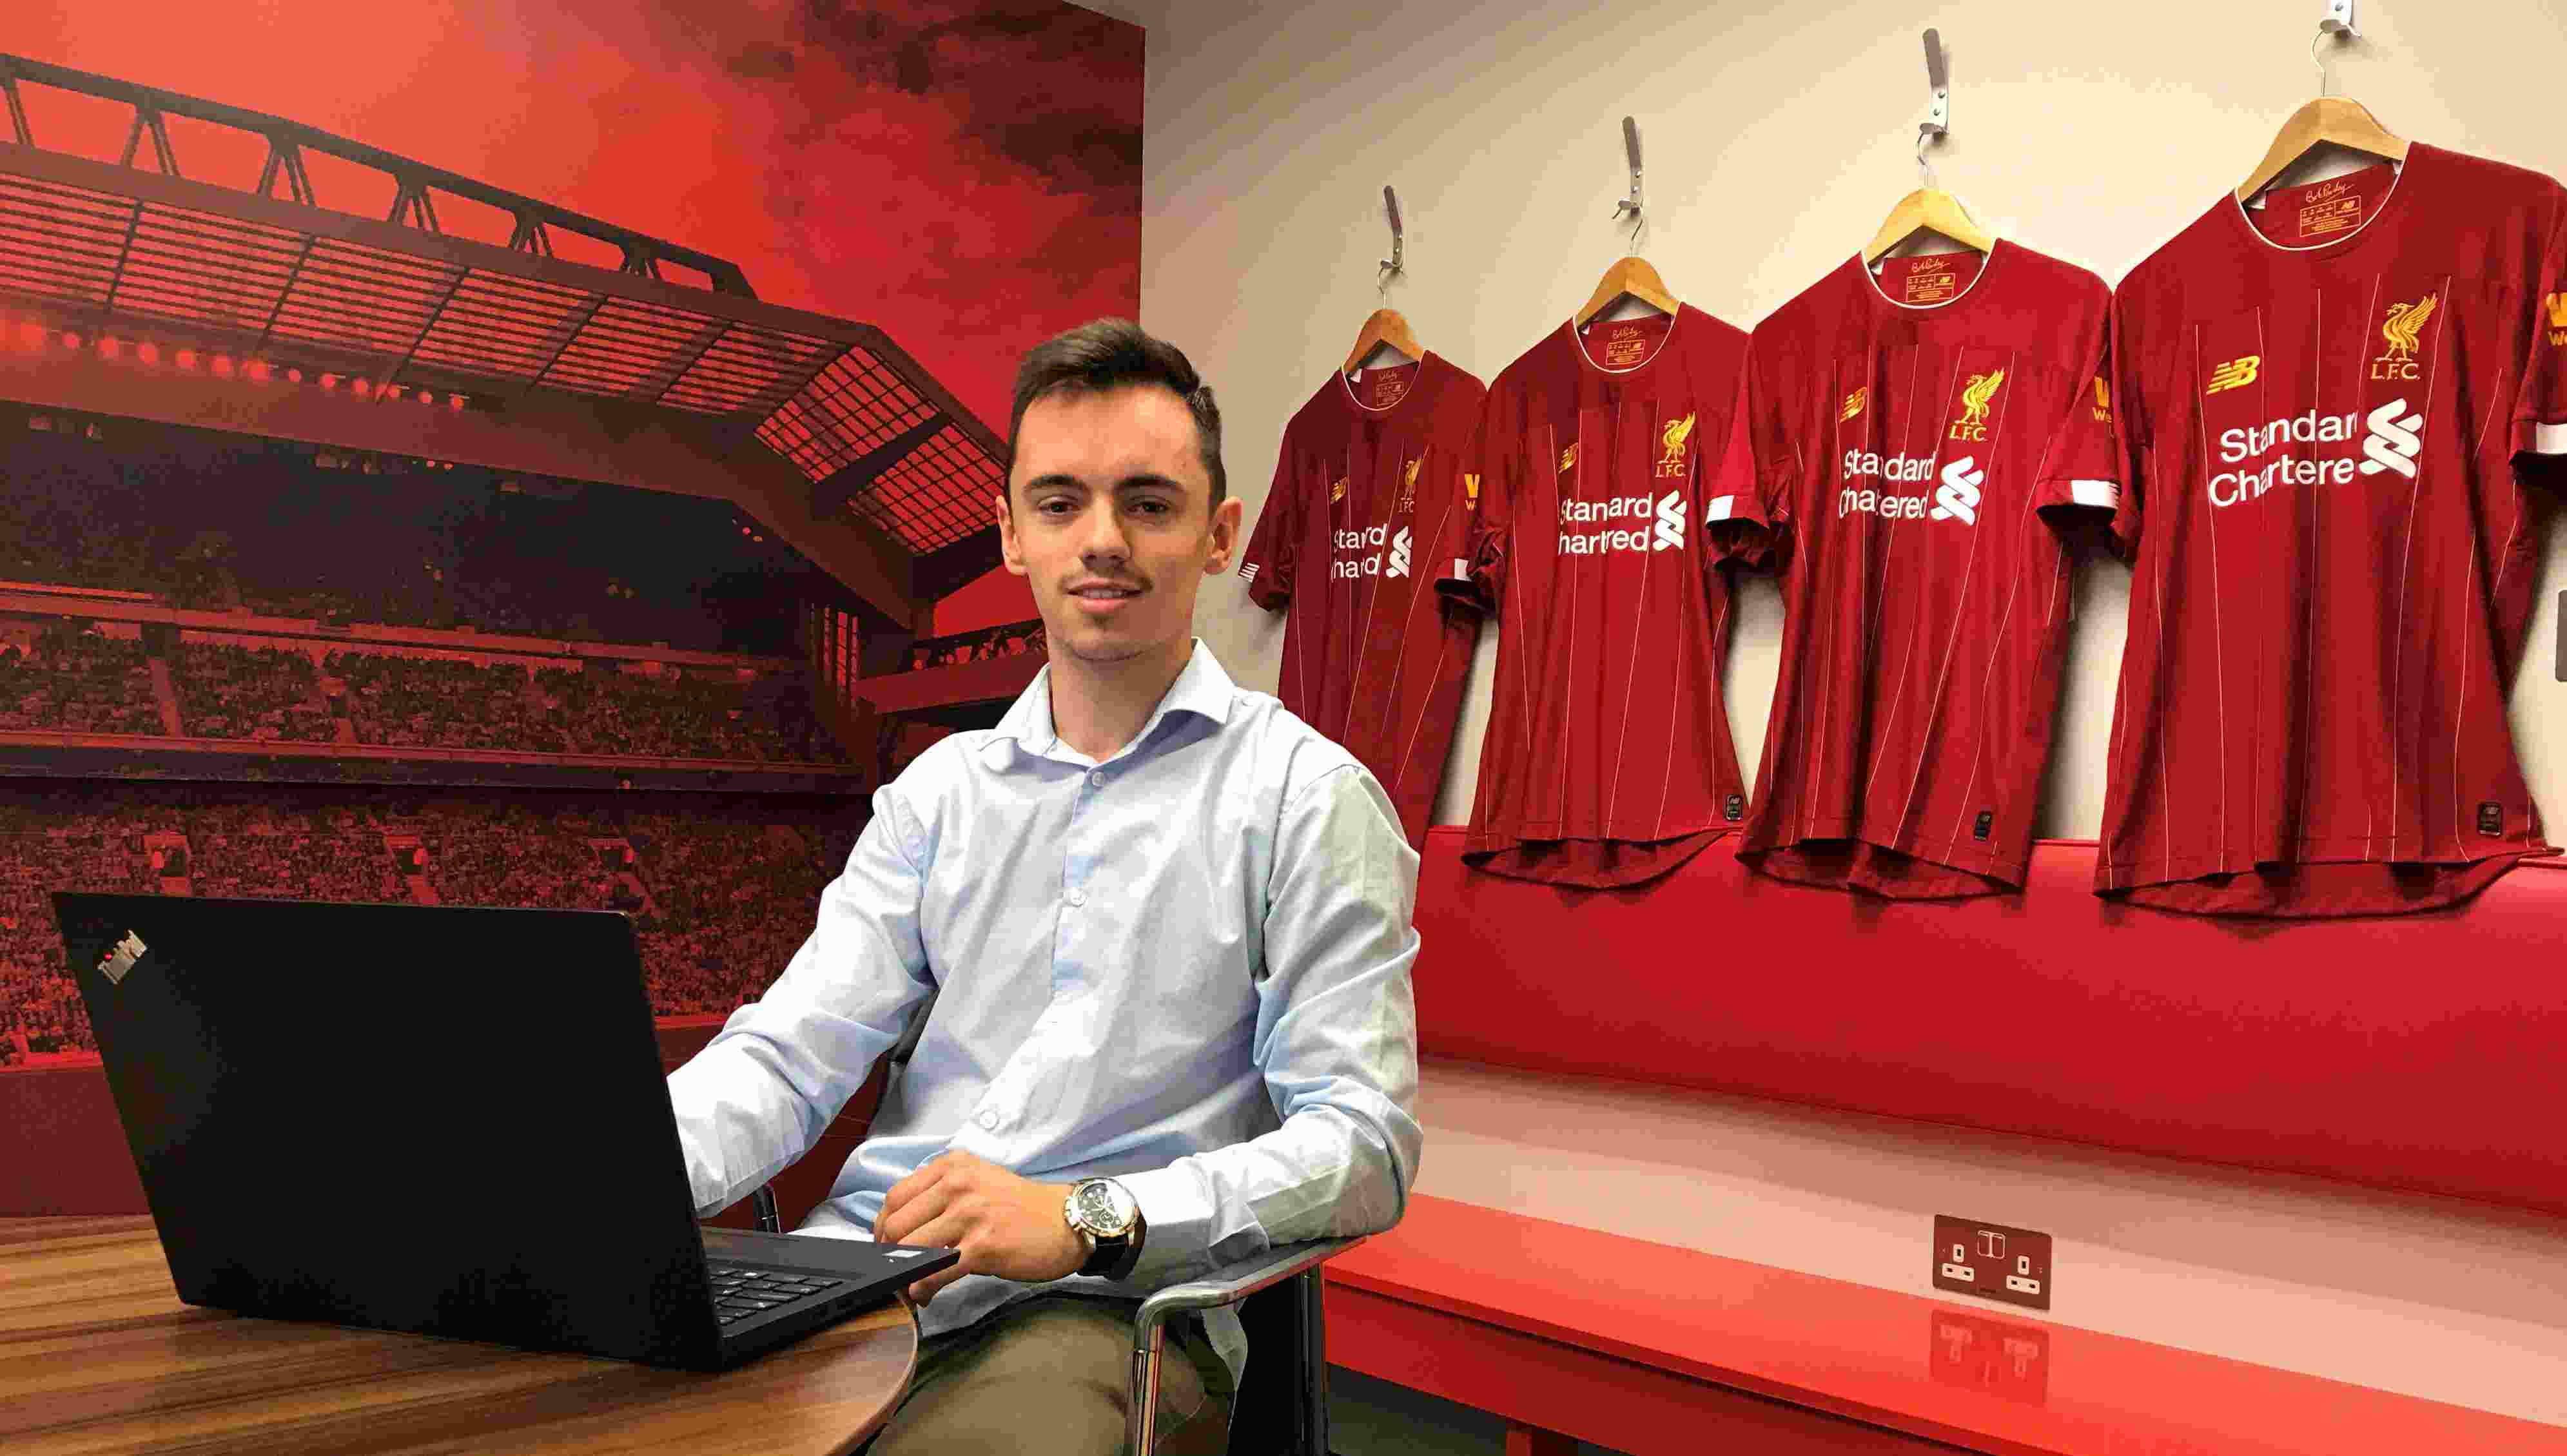 Student Blake reflects on memorable Champions League final experience